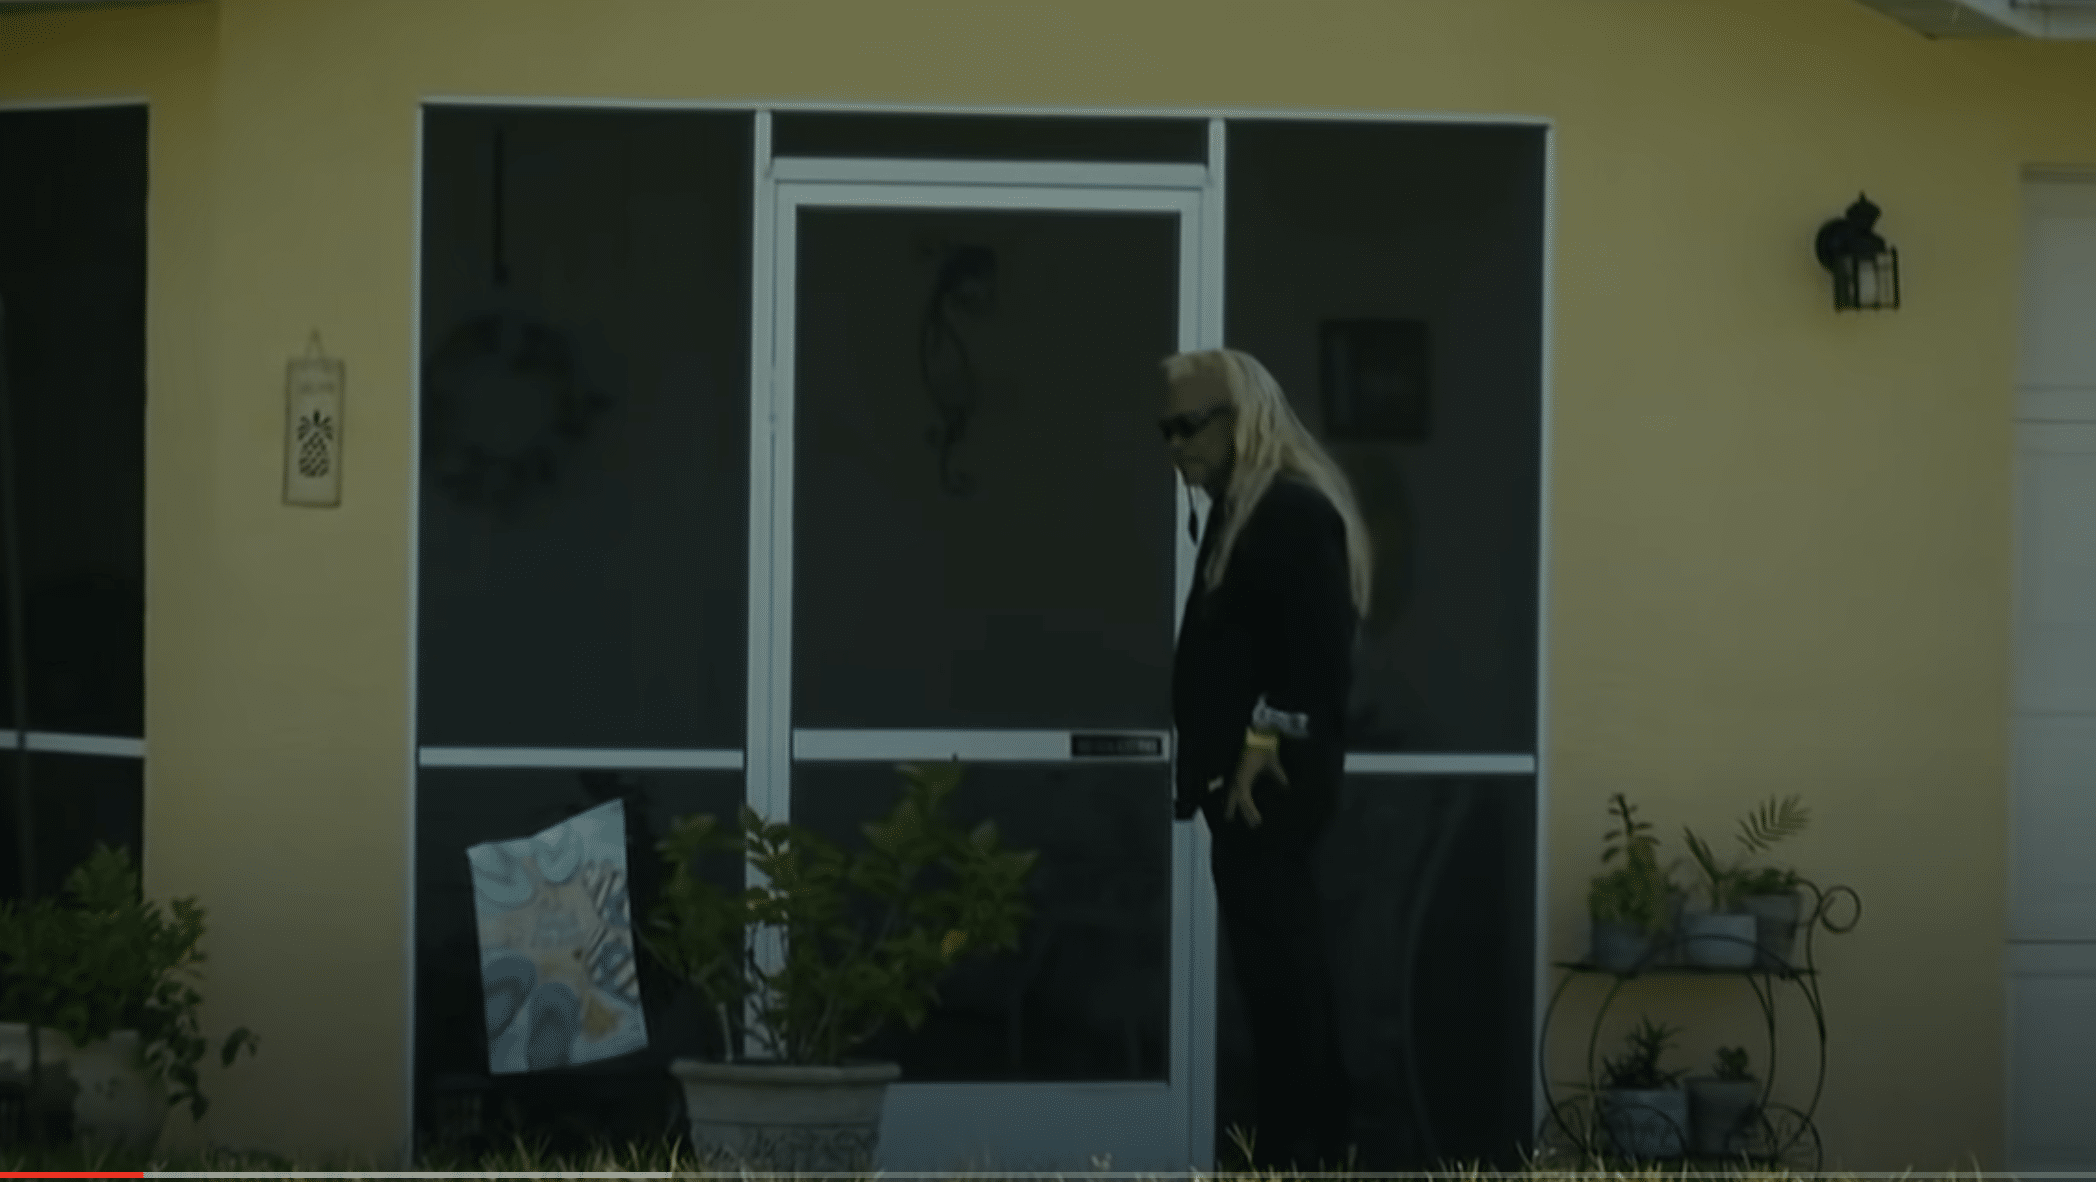 Dog the bounty hunter enters Laundrie property